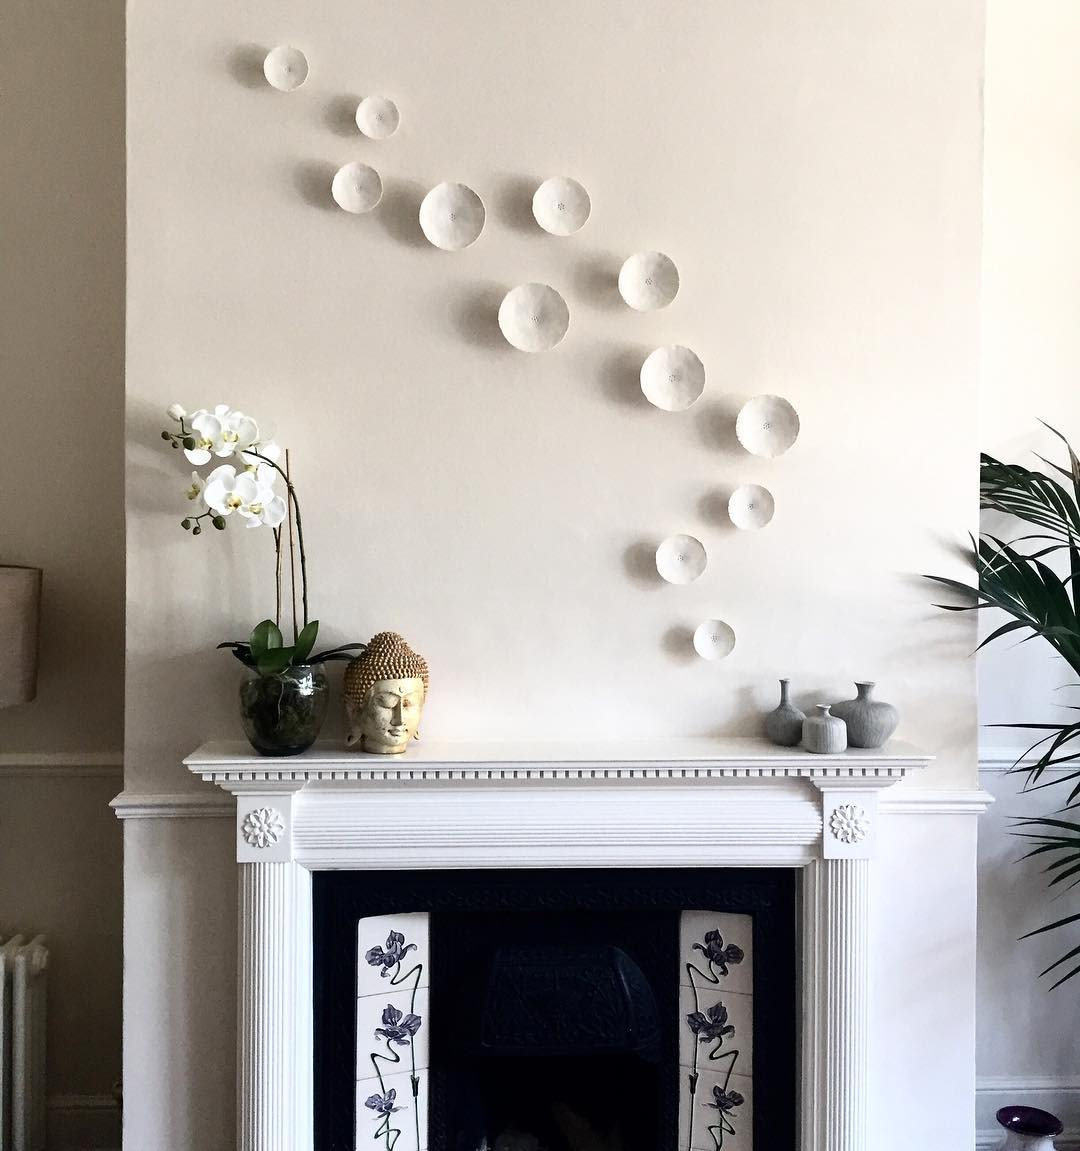 White Porcelain Wall Installation Plates